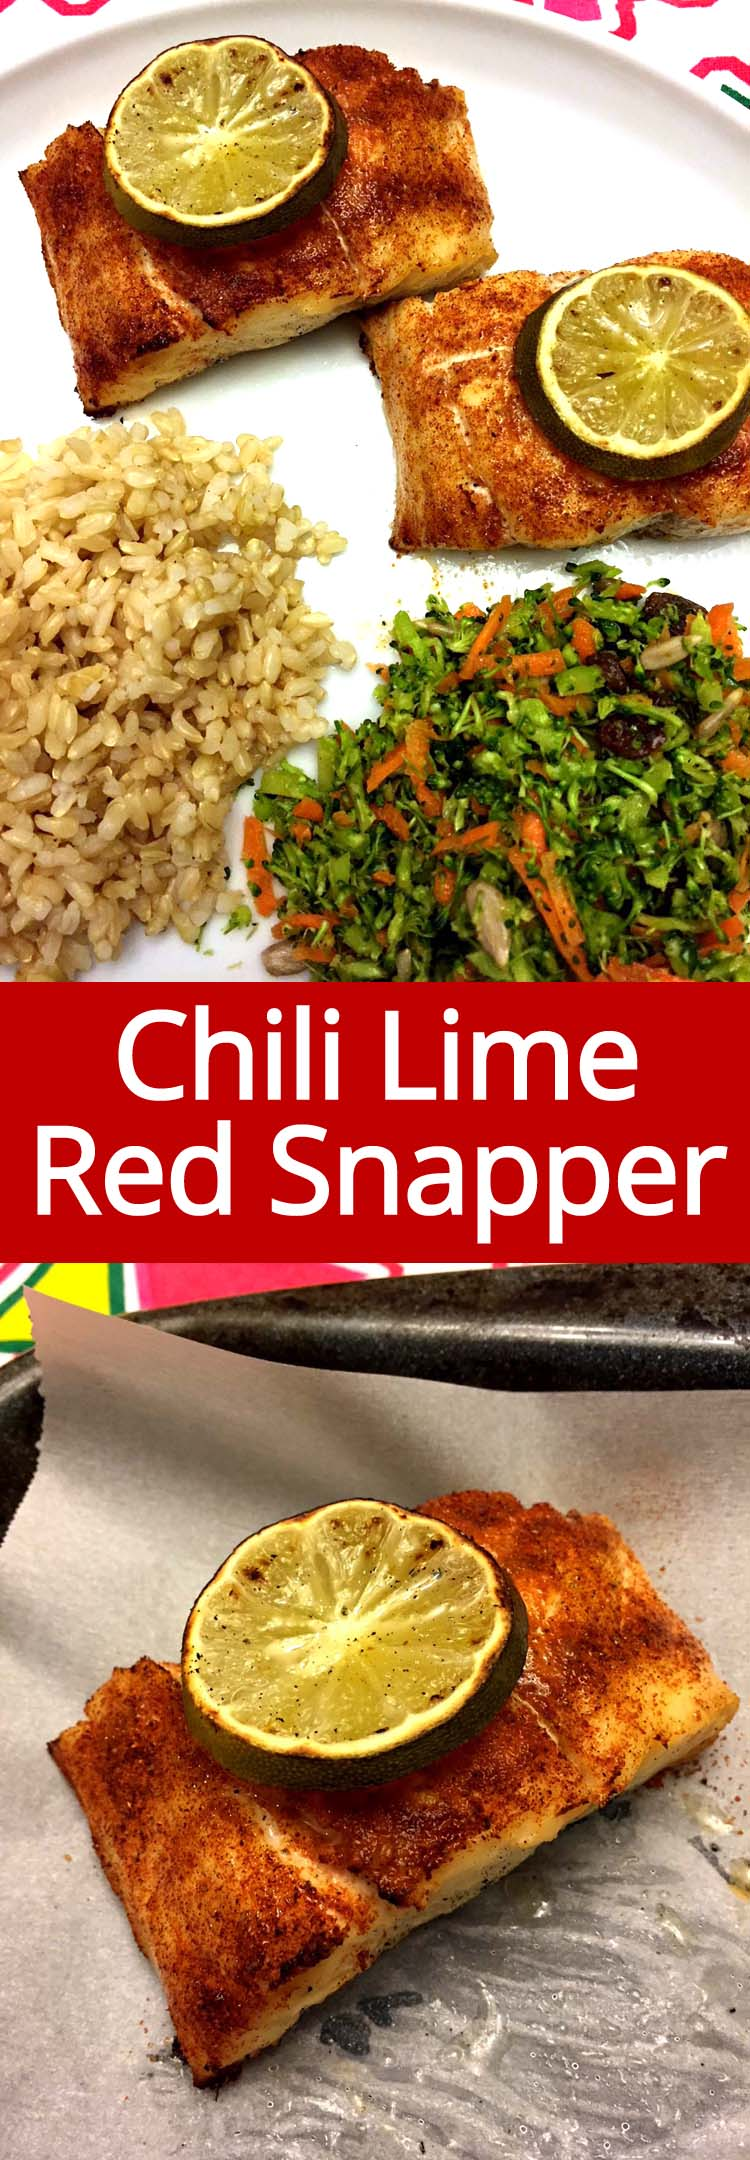 This baked red snapper with chili powder and lime is so easy to make and tastes amazing!